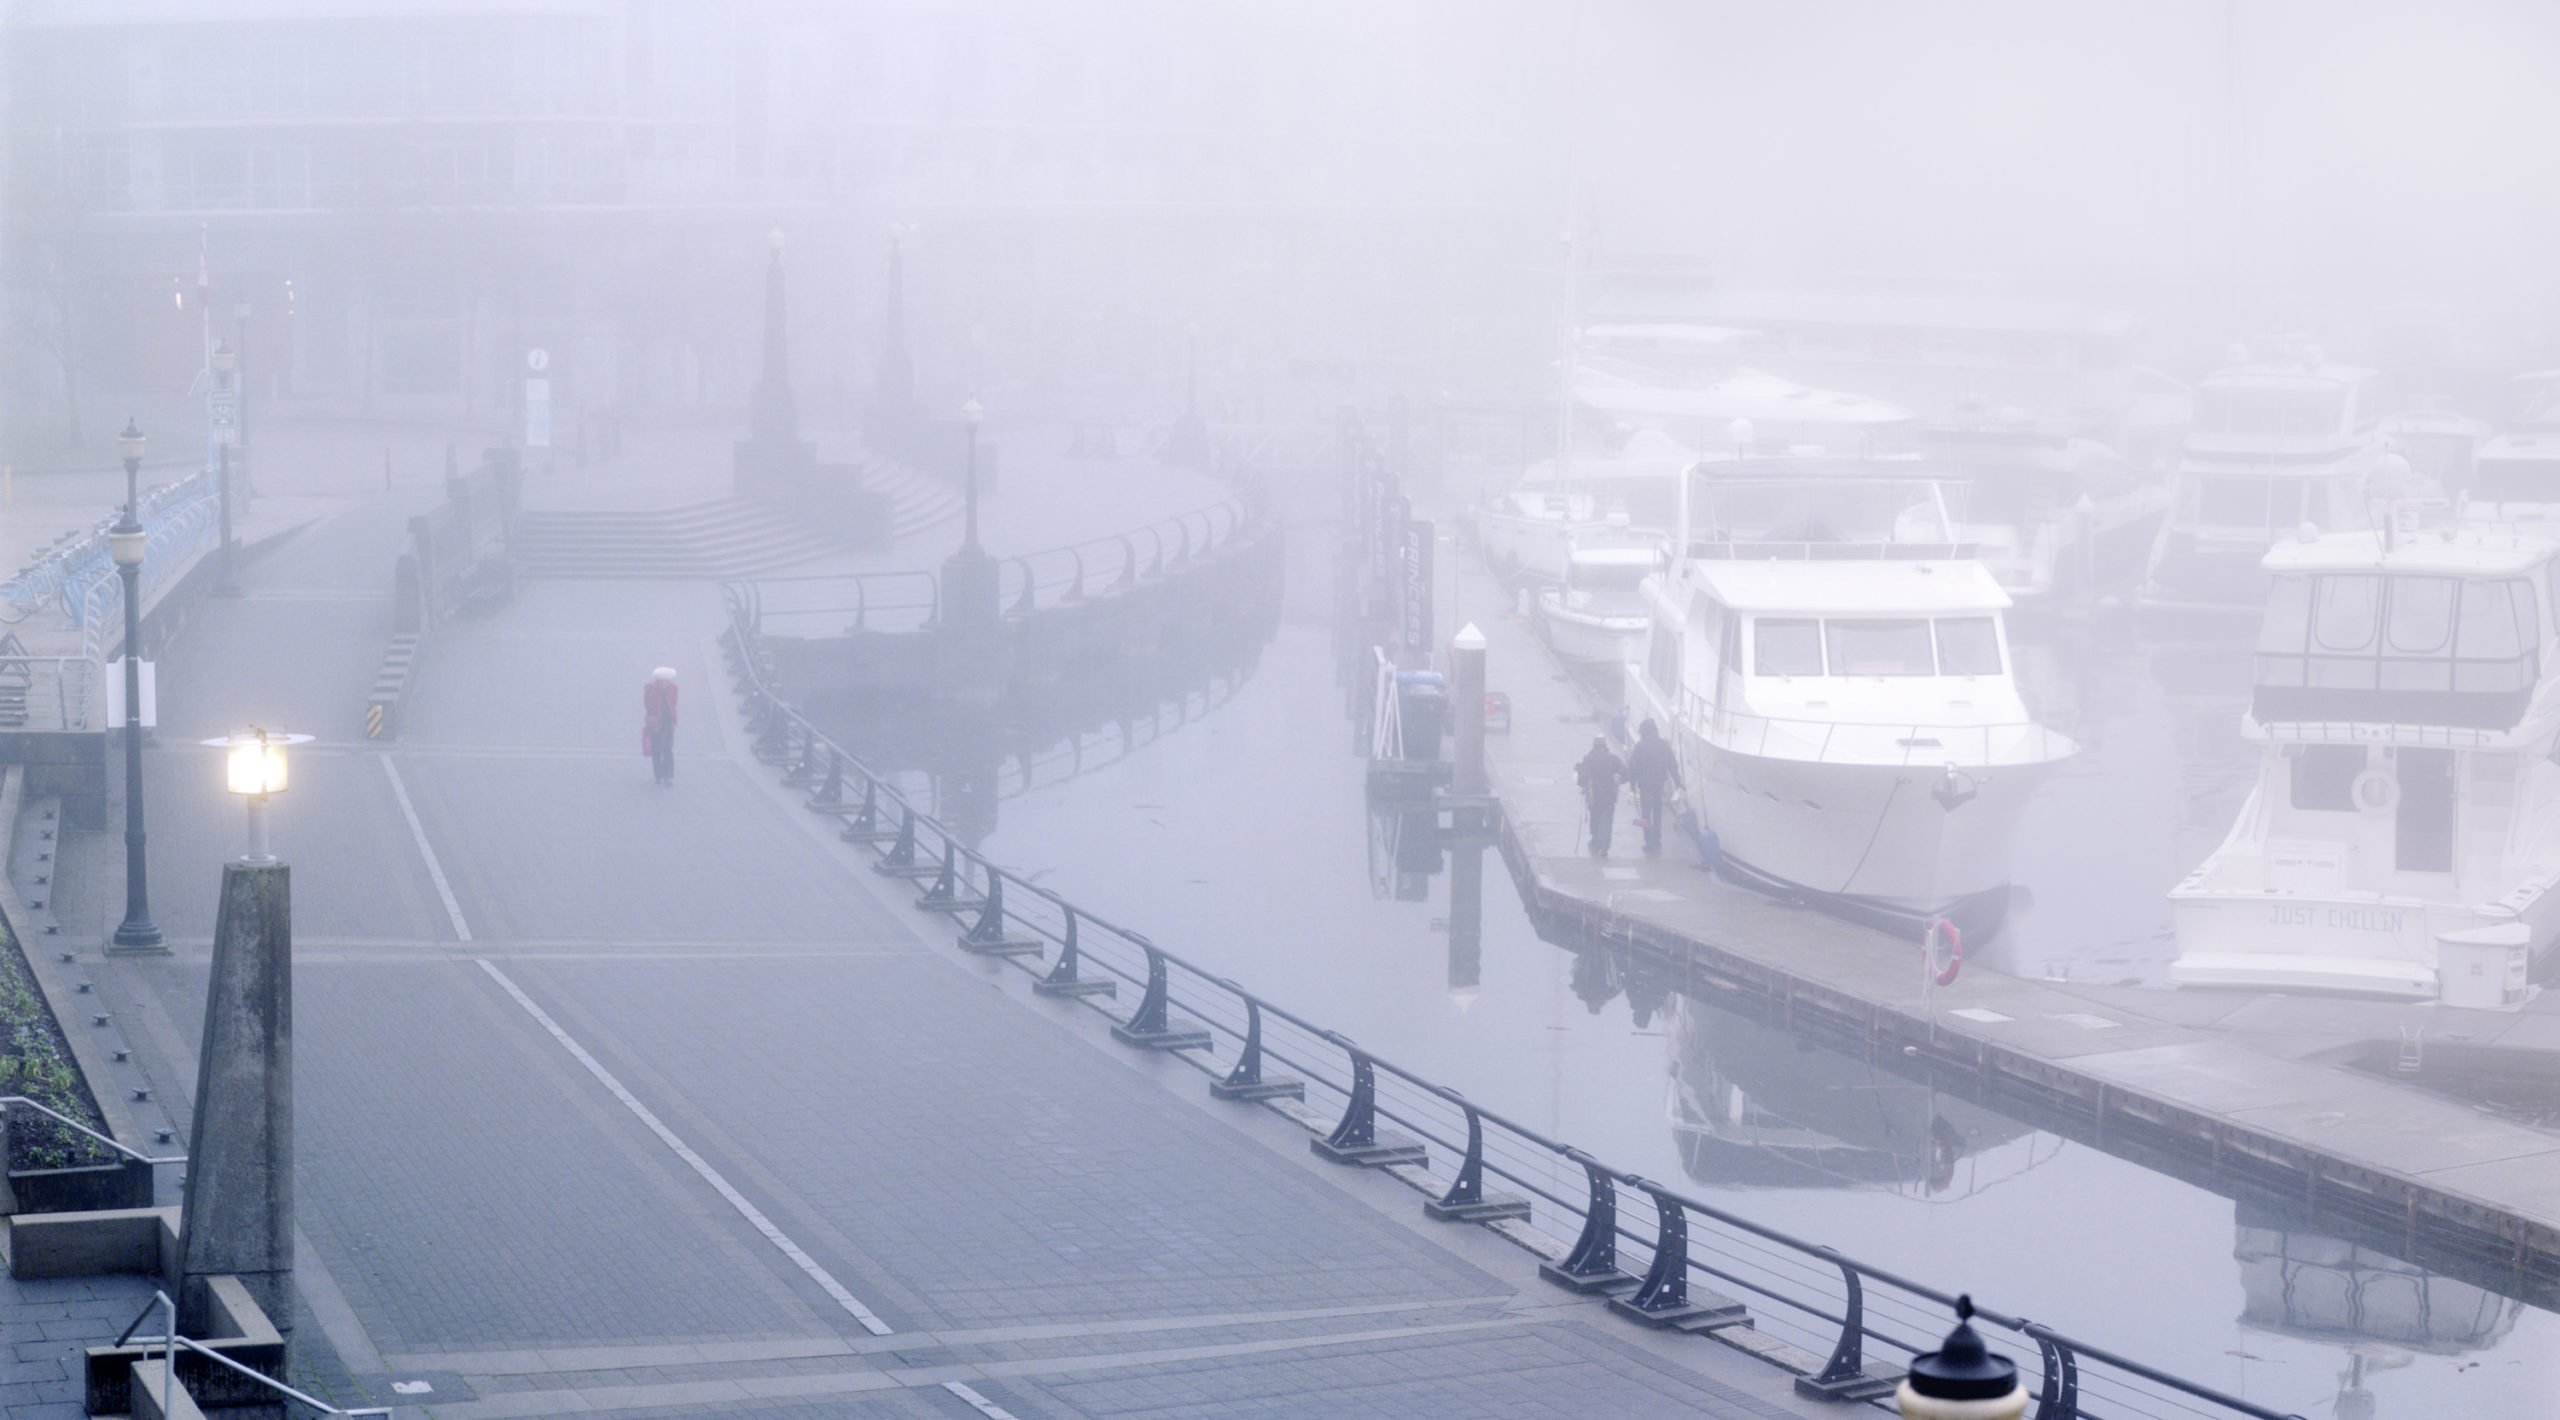 Woman_in_the_Fog_Small-scaled.jpg